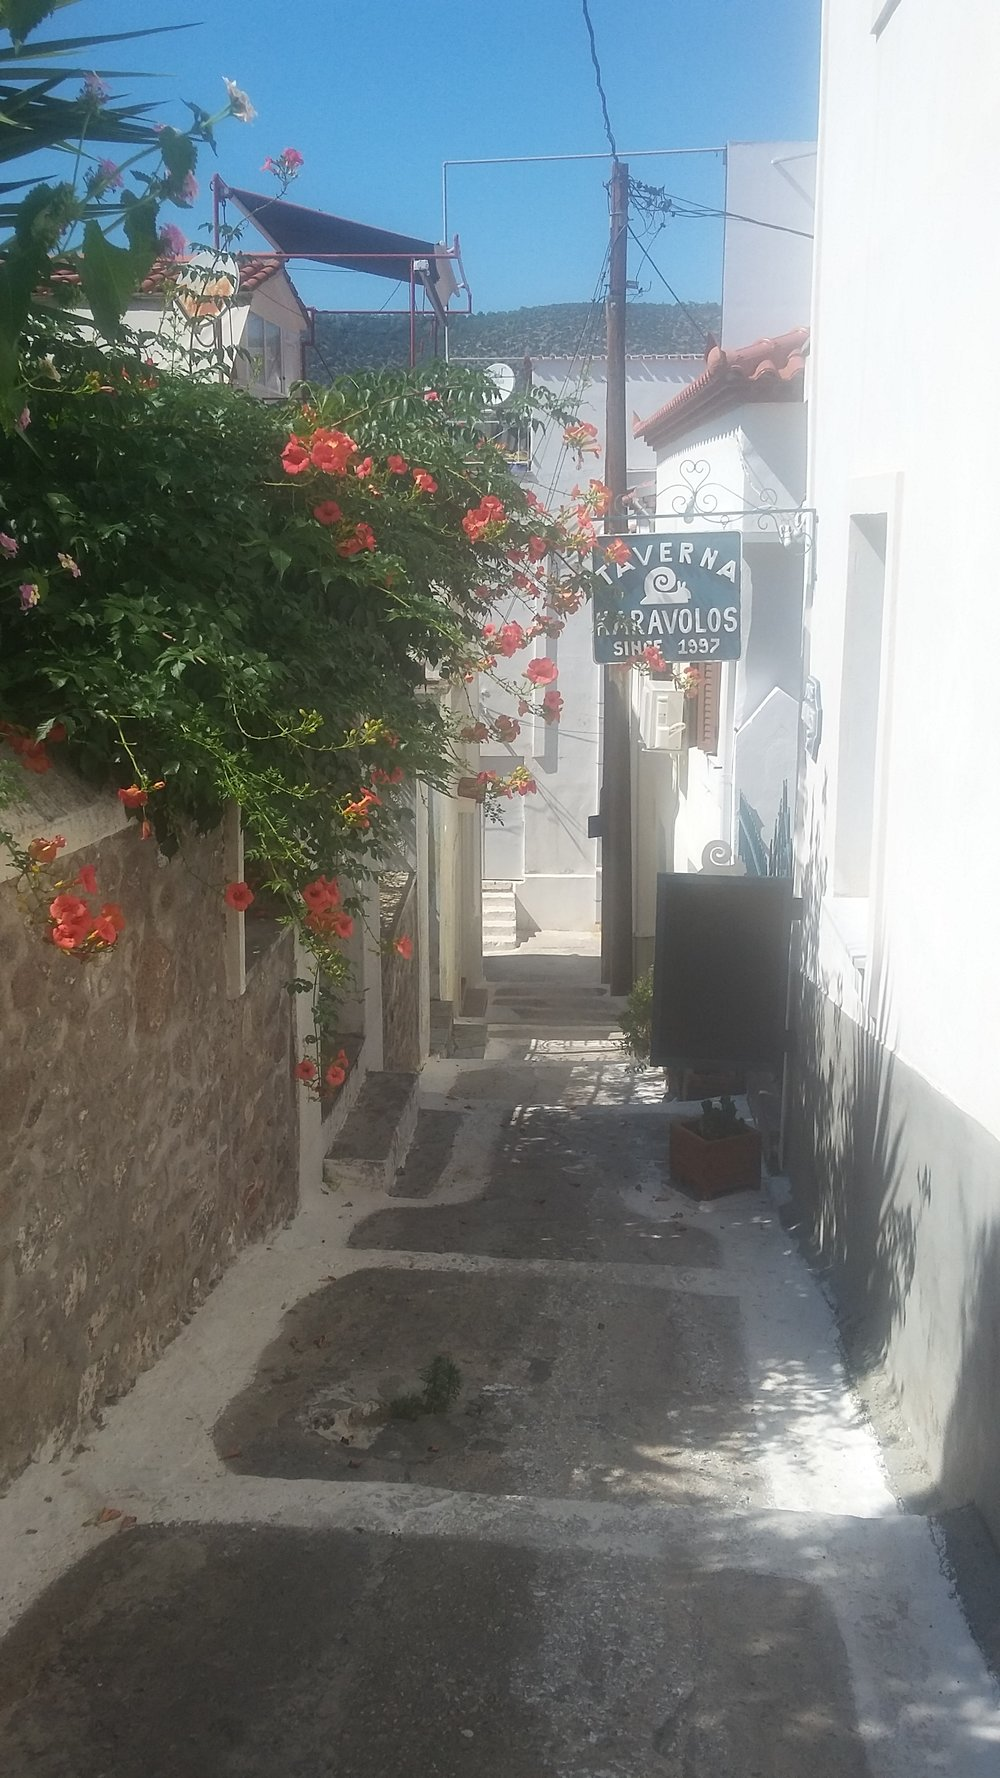 Wandering the little alleys of Poros